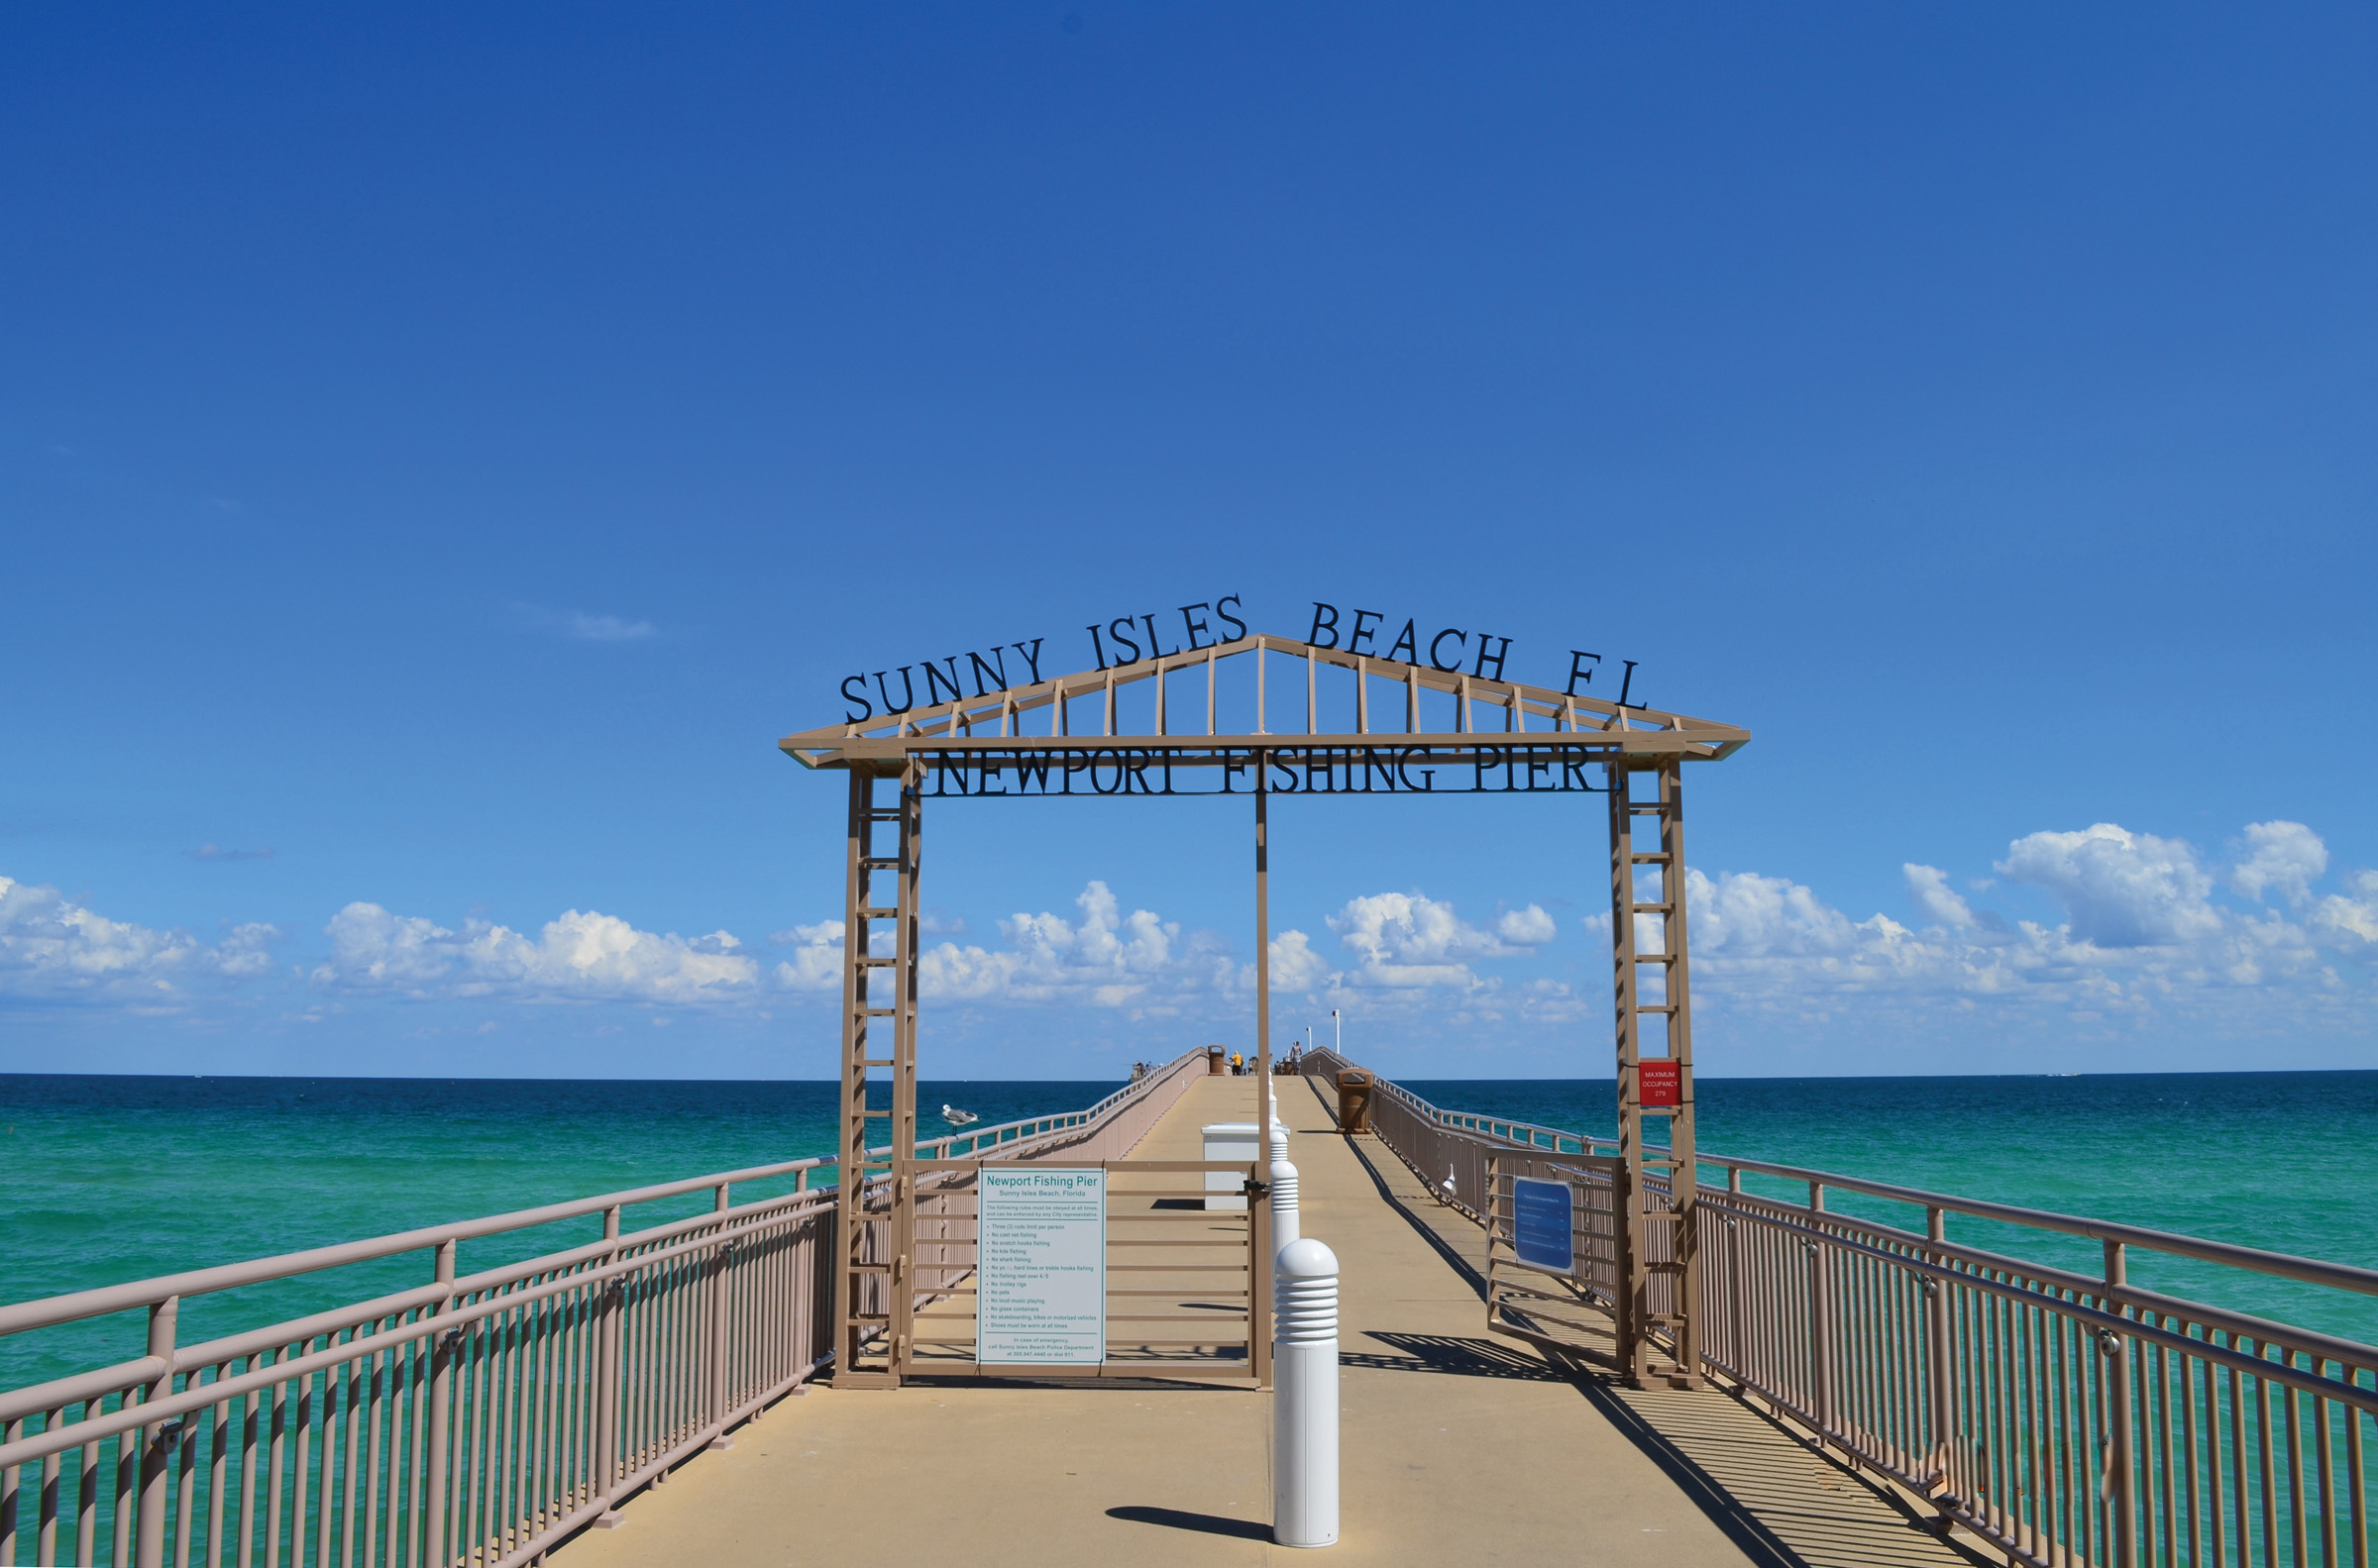 Newport Fishing Pier Reelished As A Destination City Of Sunny Isles Beach